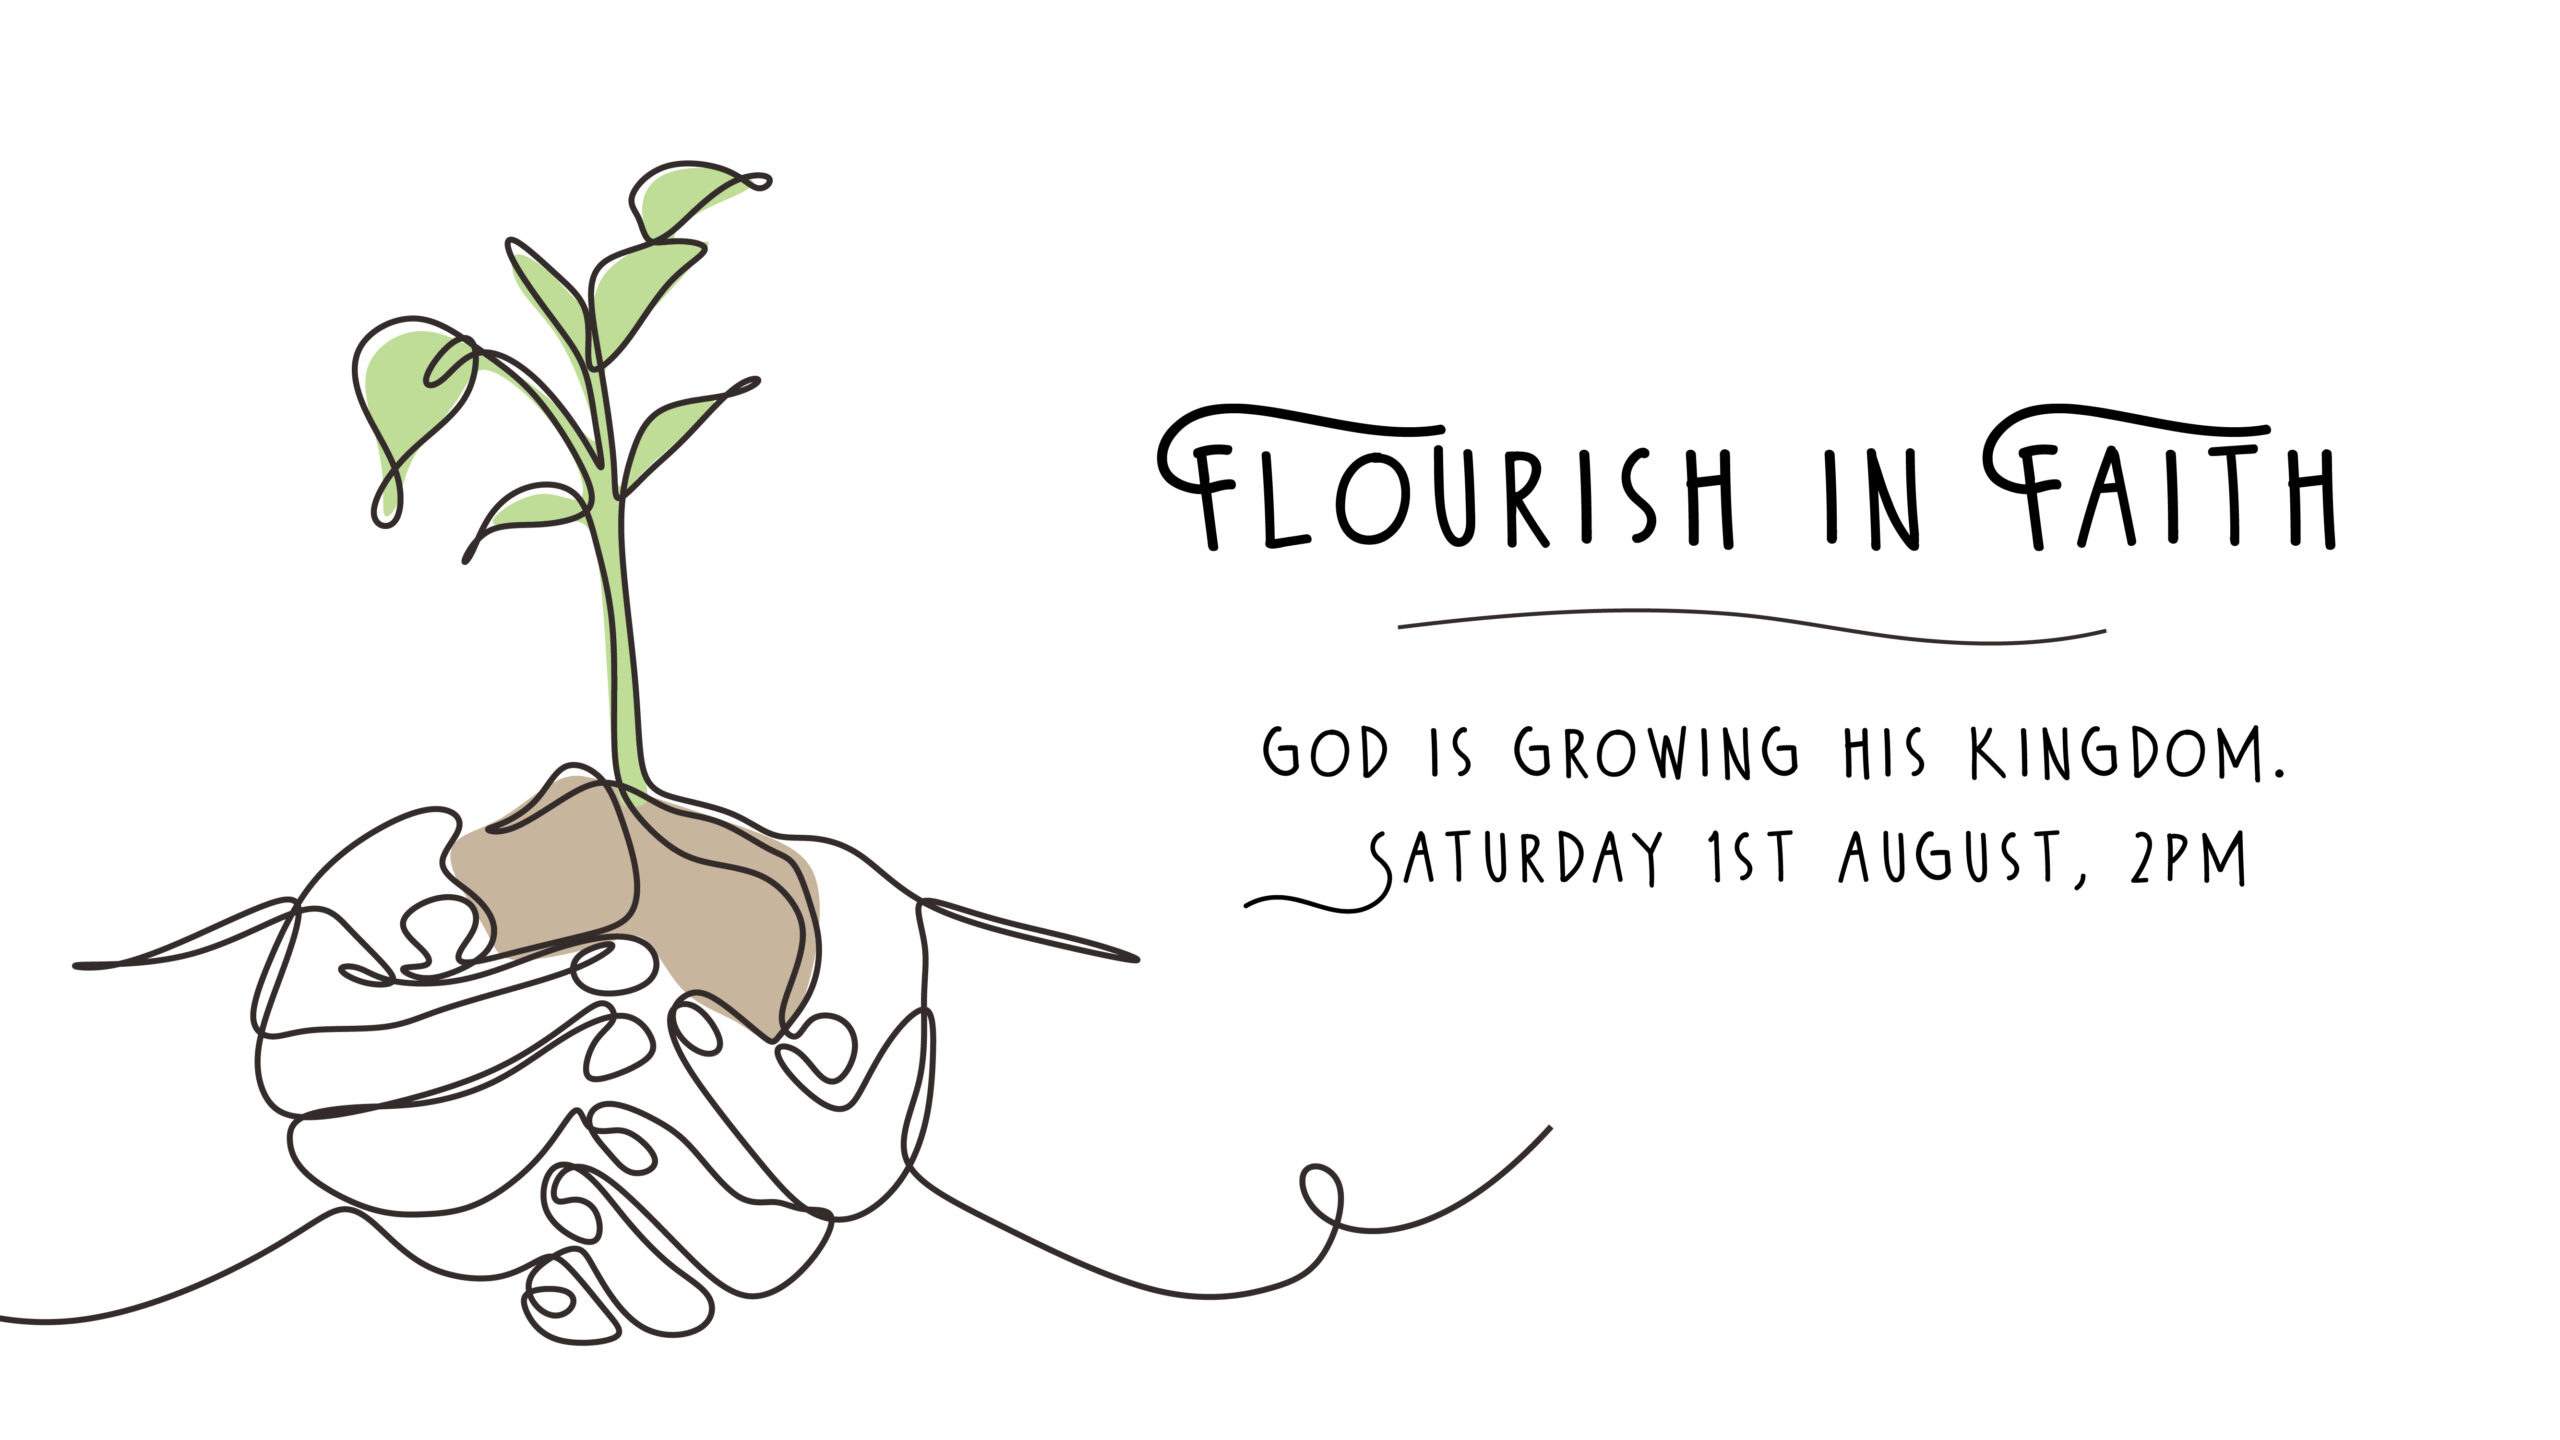 Flourish in Faith: God is Growing His Kingdom